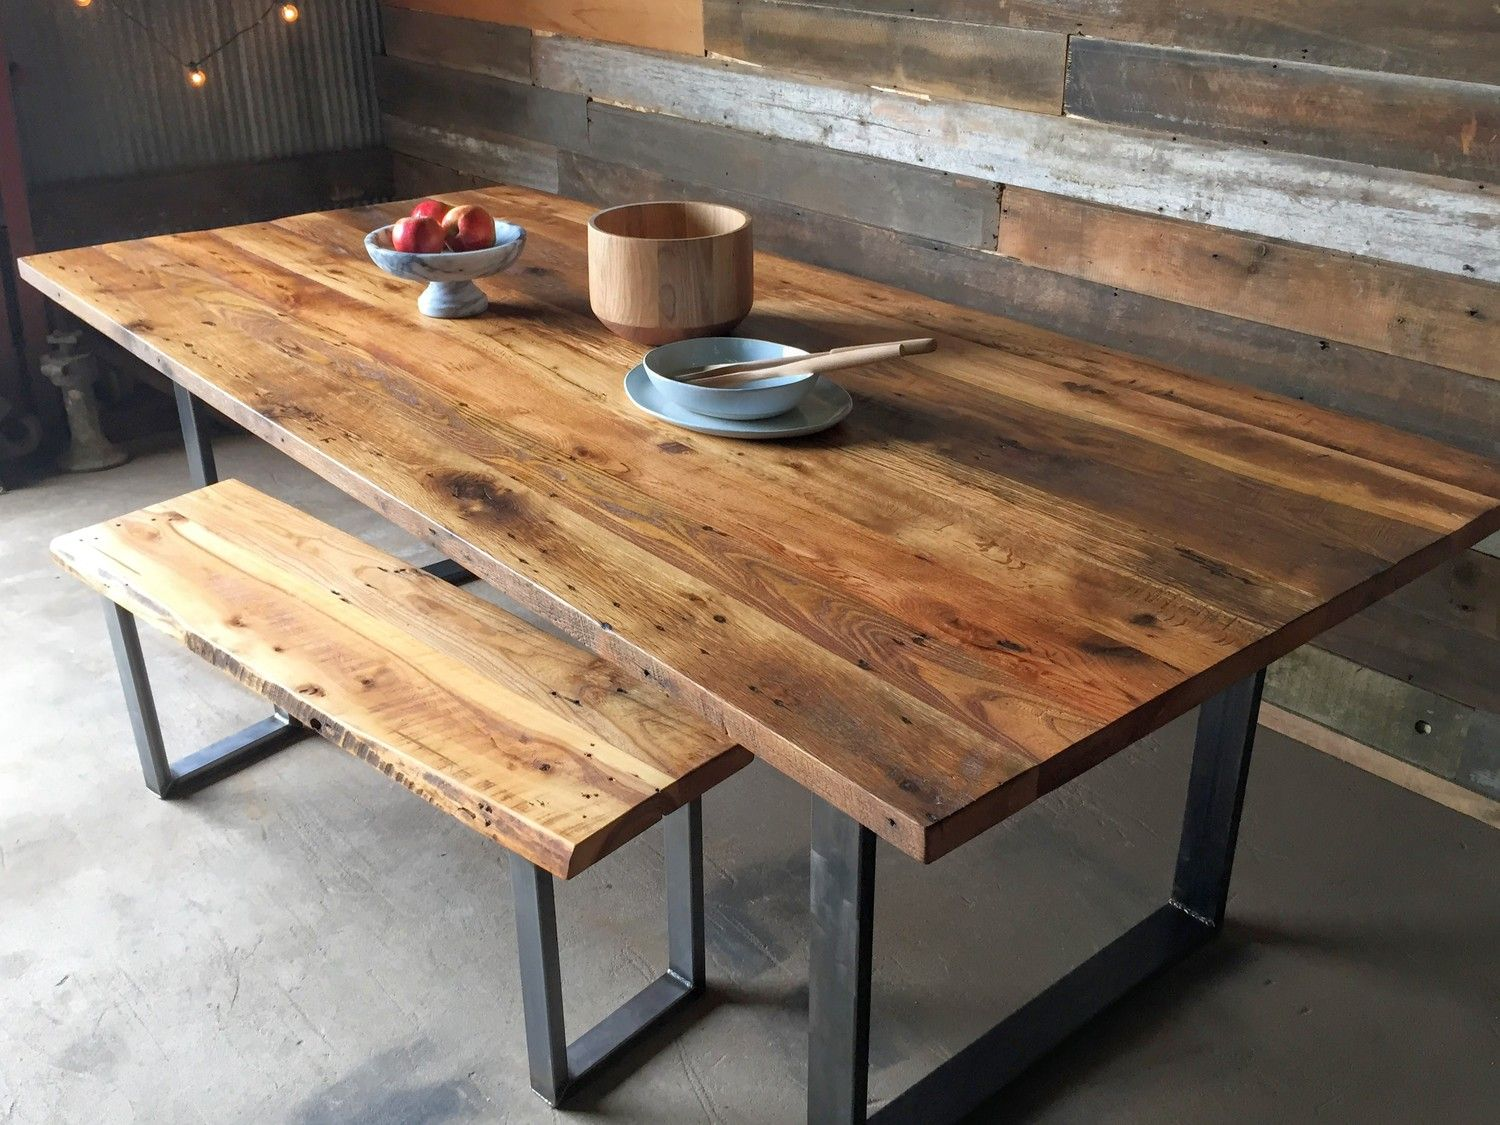 DIY furniture   Reclaimed Wood Dining Table. Industrial Modern Dining Table   U Shaped Metal Legs   Reclaimed